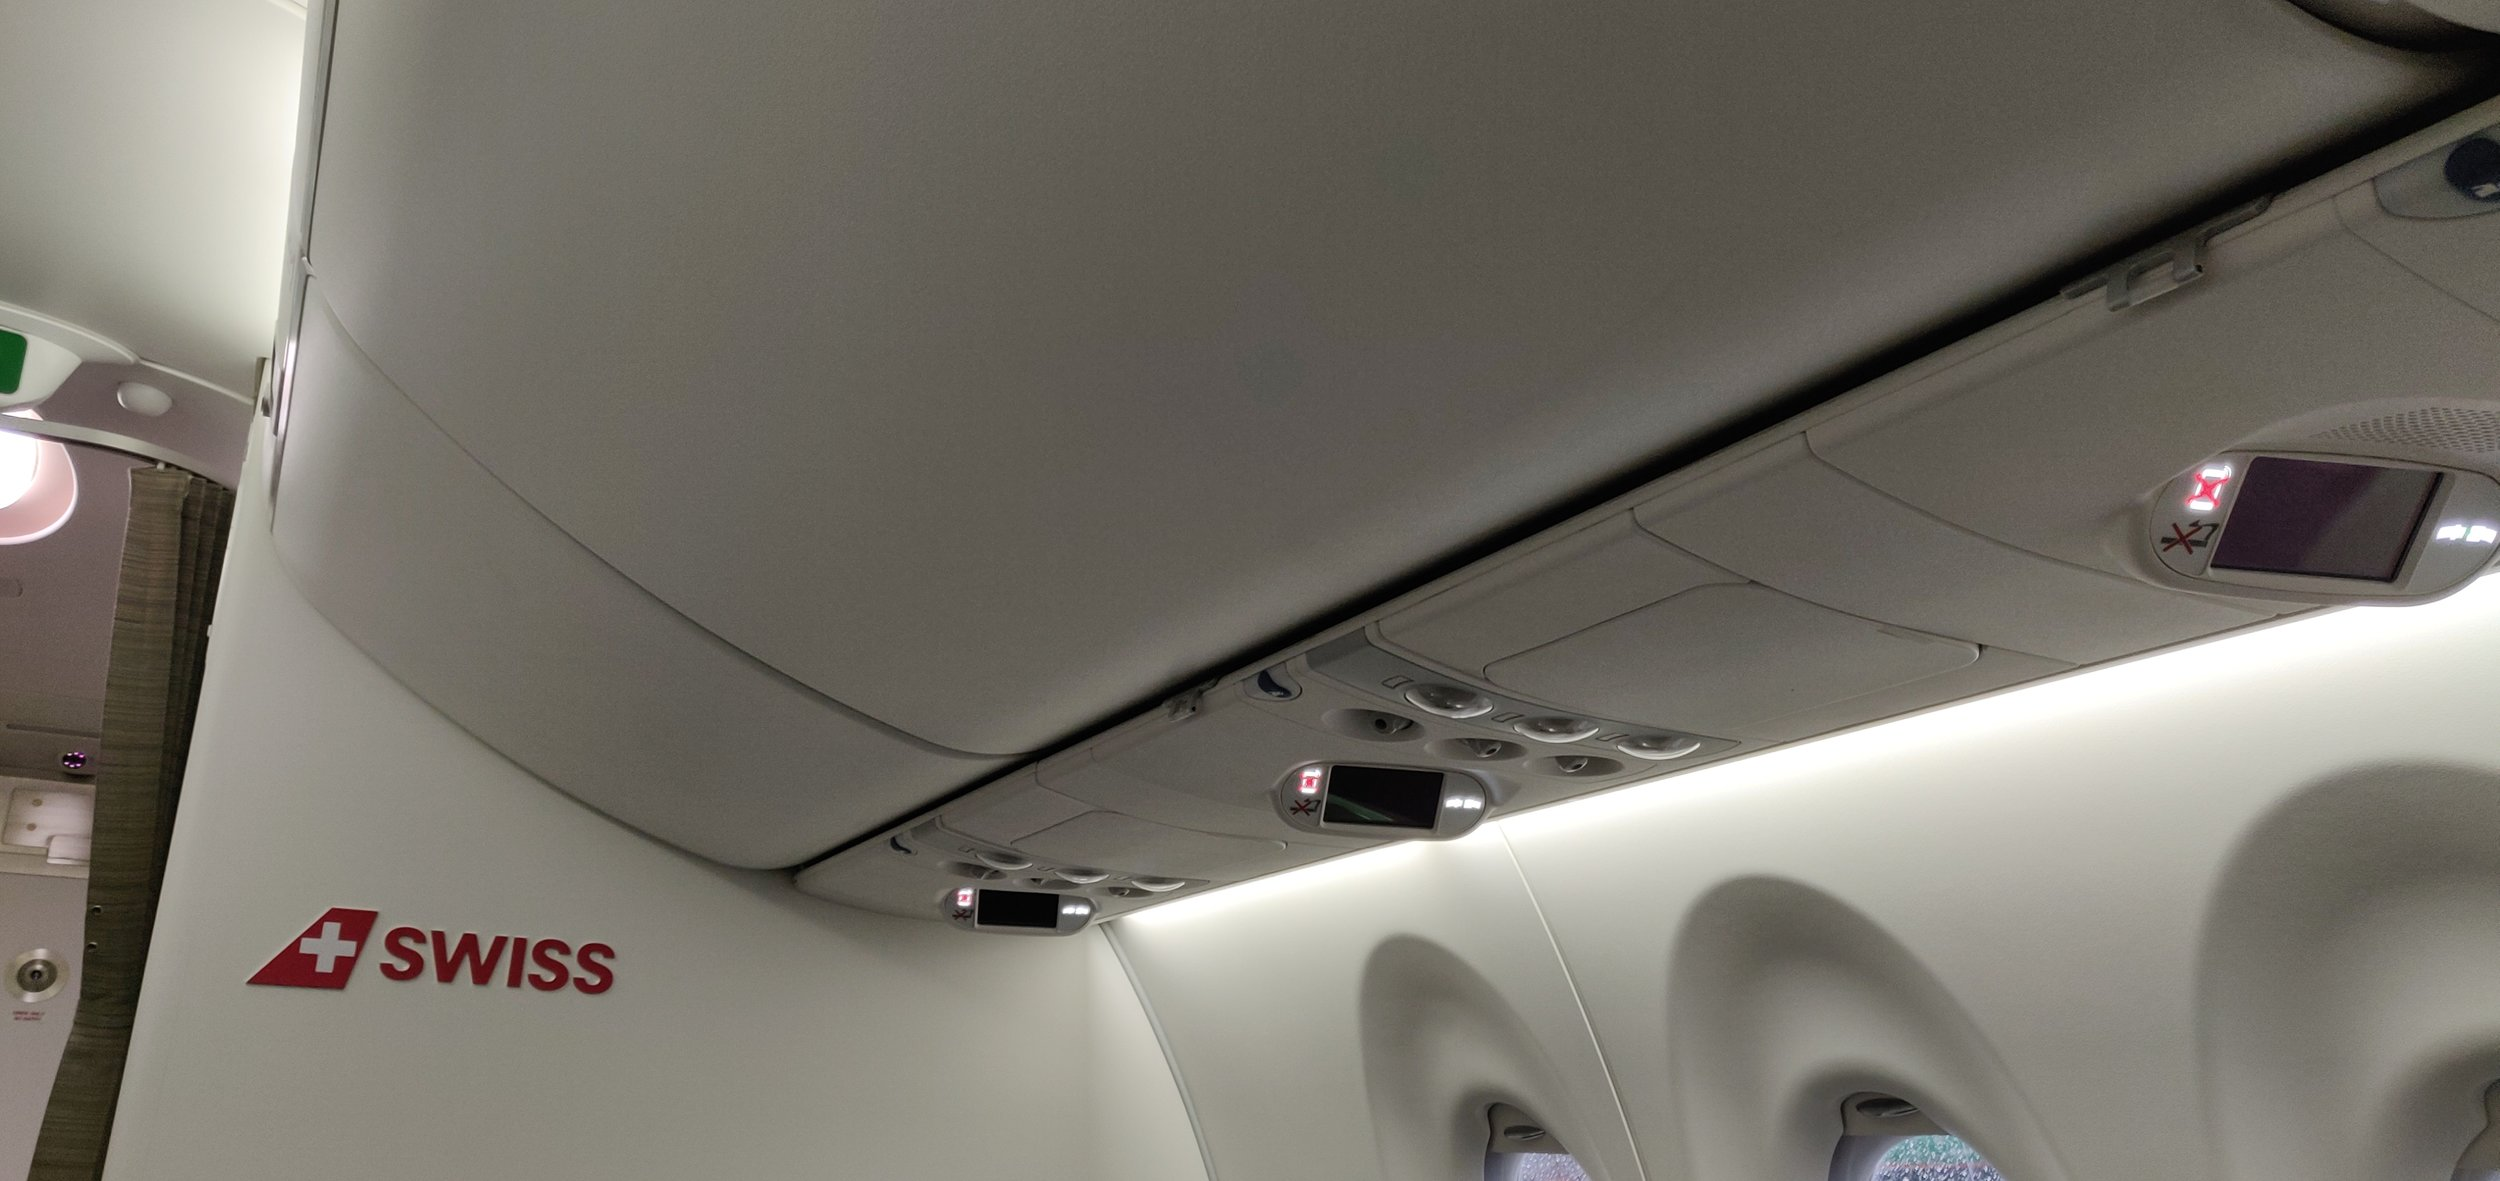 Swiss Airlines Business Class A220 - Overhead